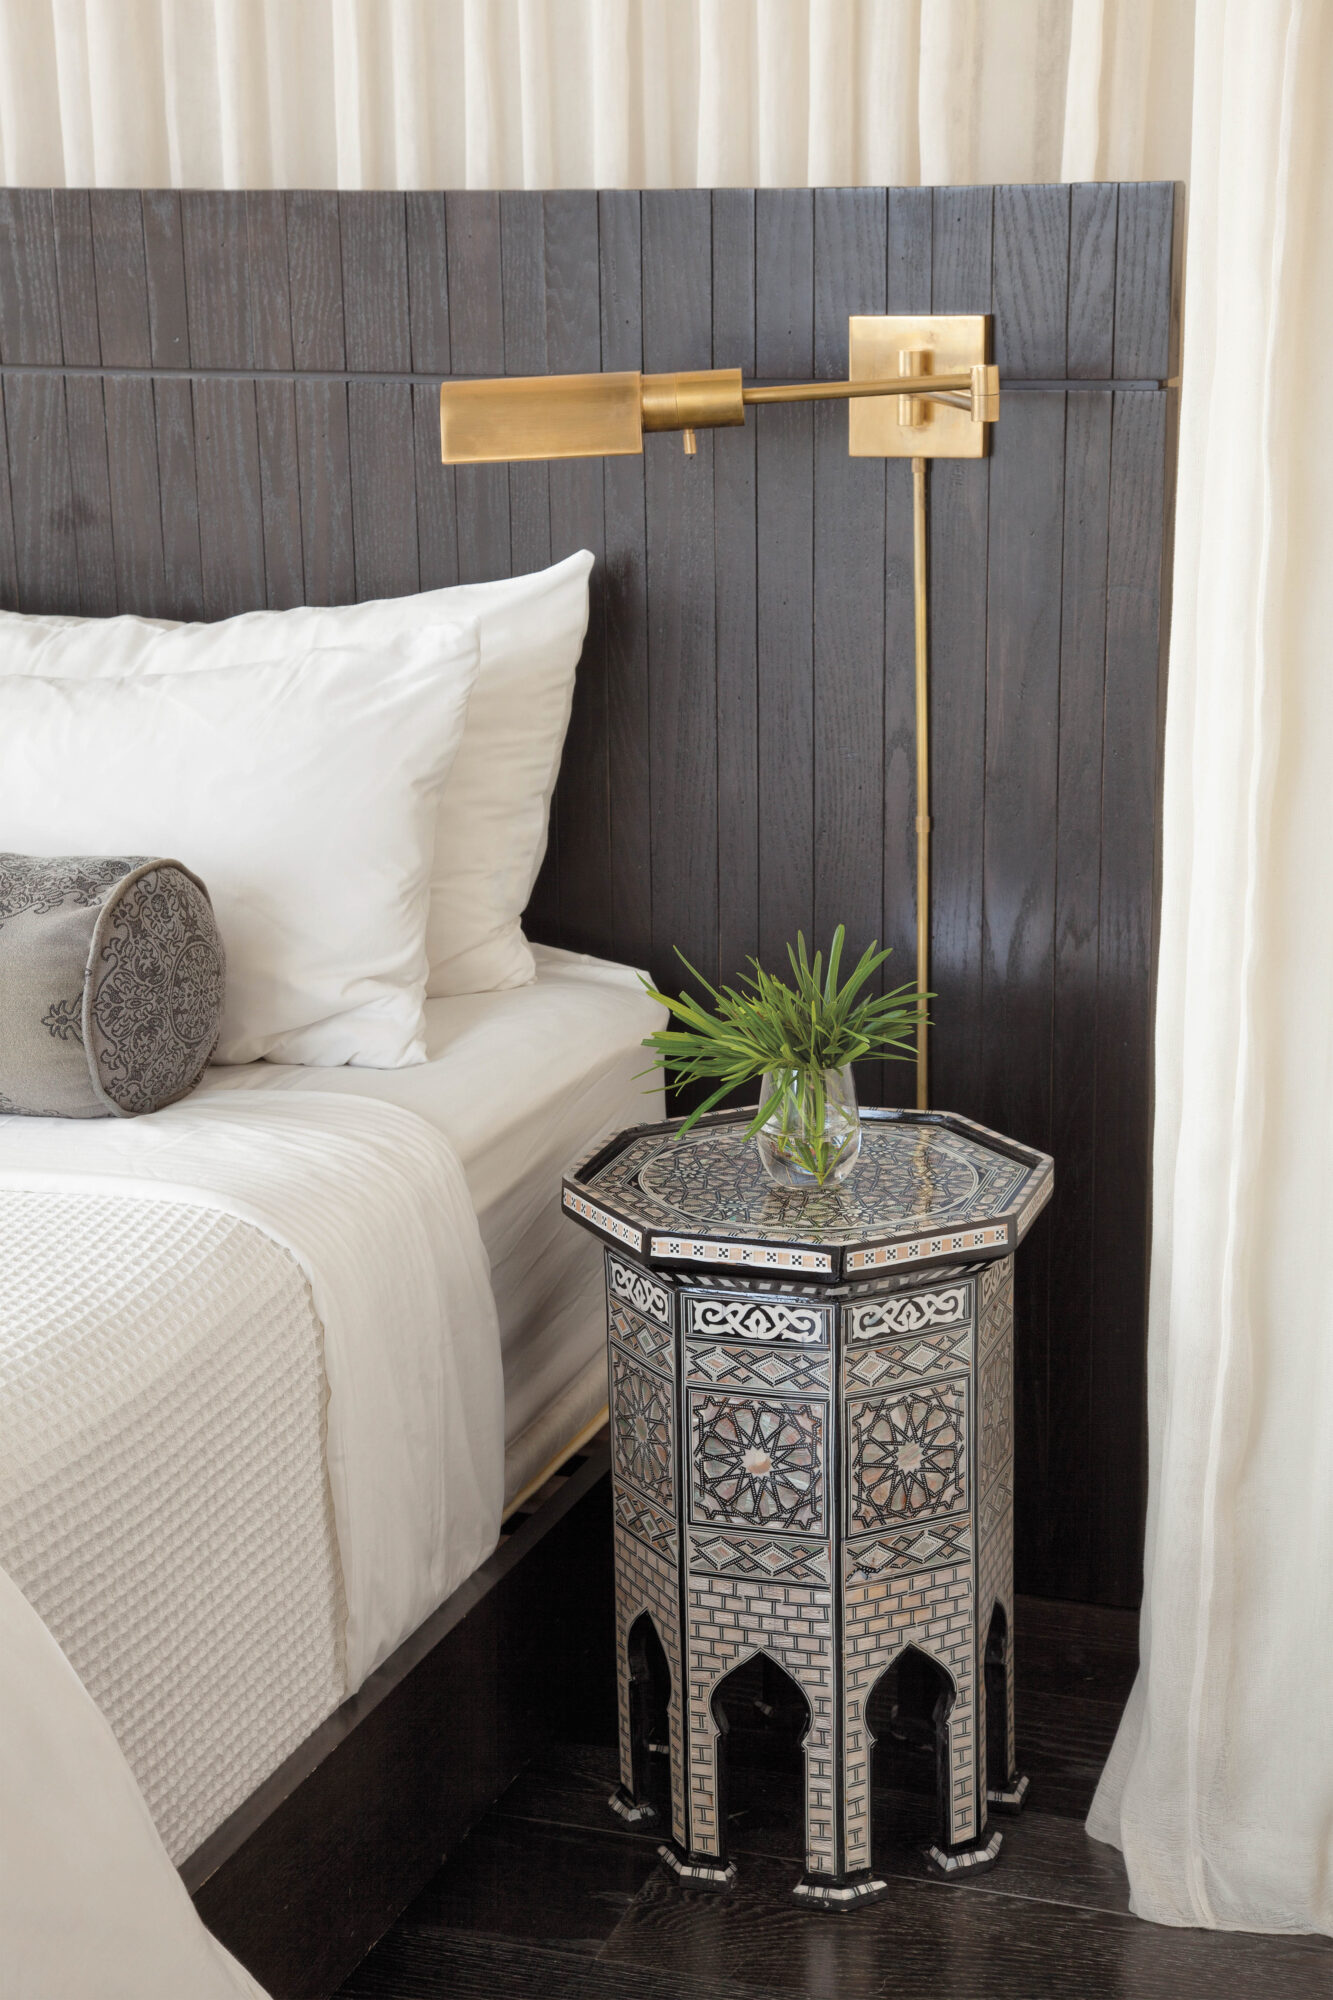 vignette of nightstand and side of bed